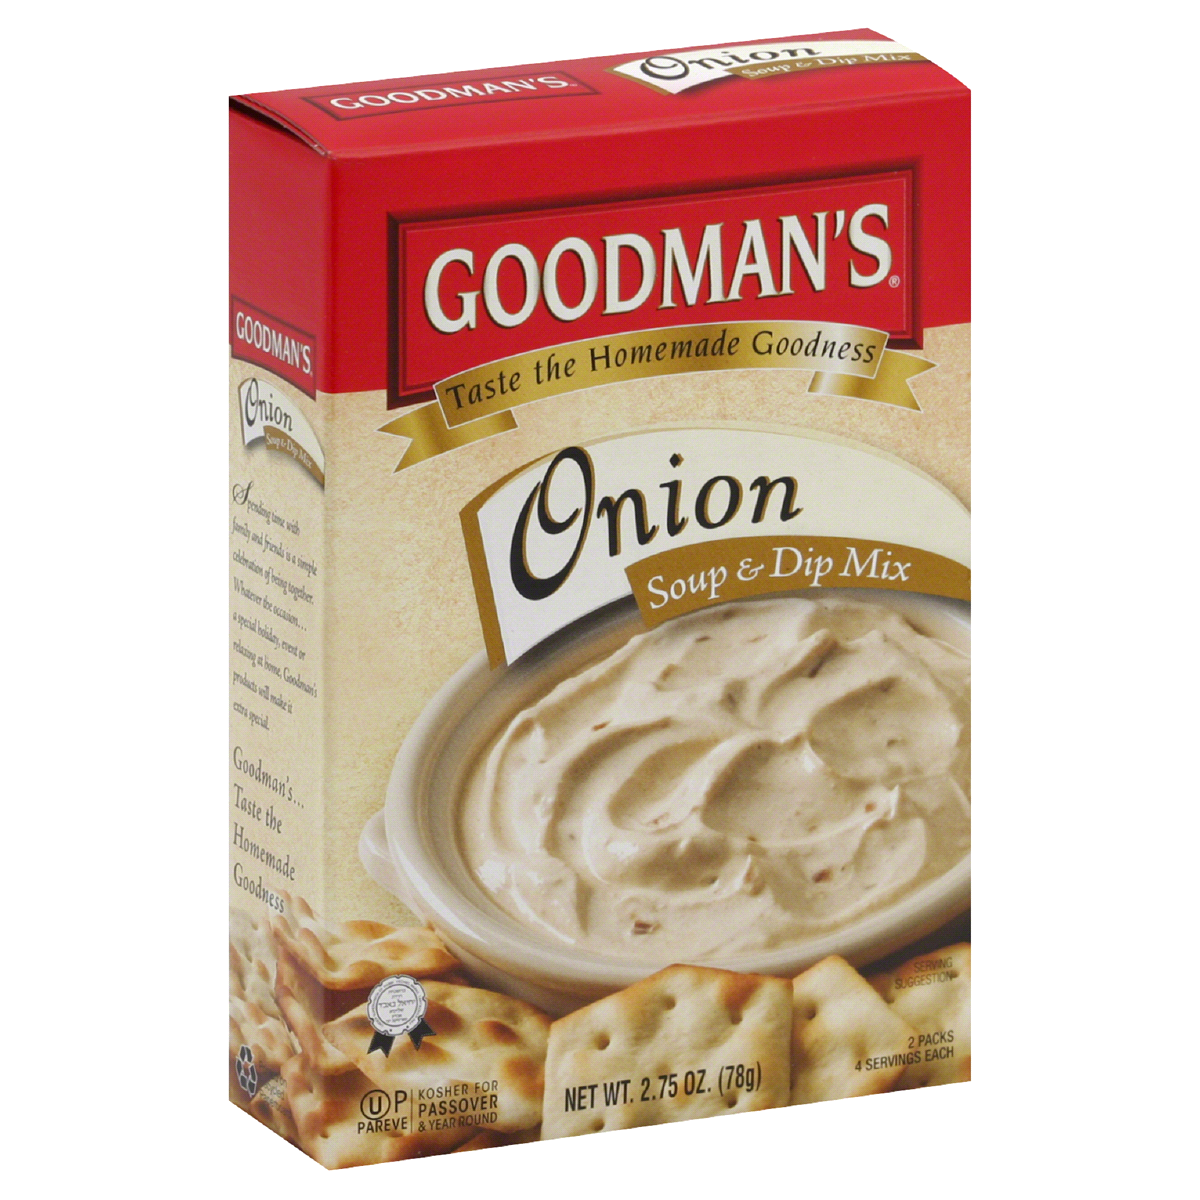 Onion Soup & Dip Mix (2.75oz) Goodmans